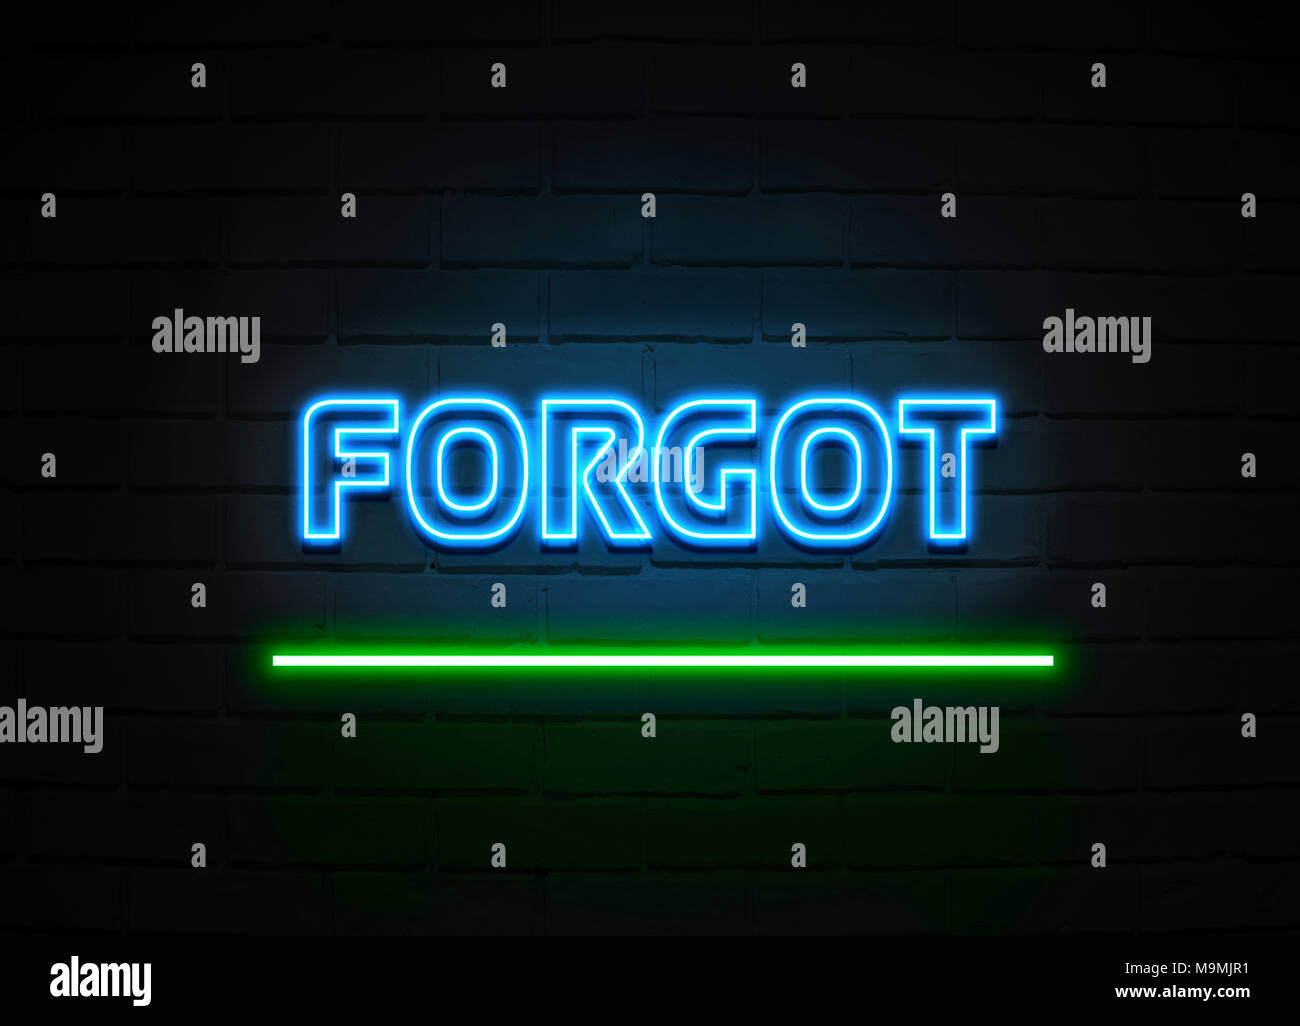 Forgot neon sign - Glowing Neon Sign on brickwall wall - 3D rendered royalty free stock illustration. - Stock Image